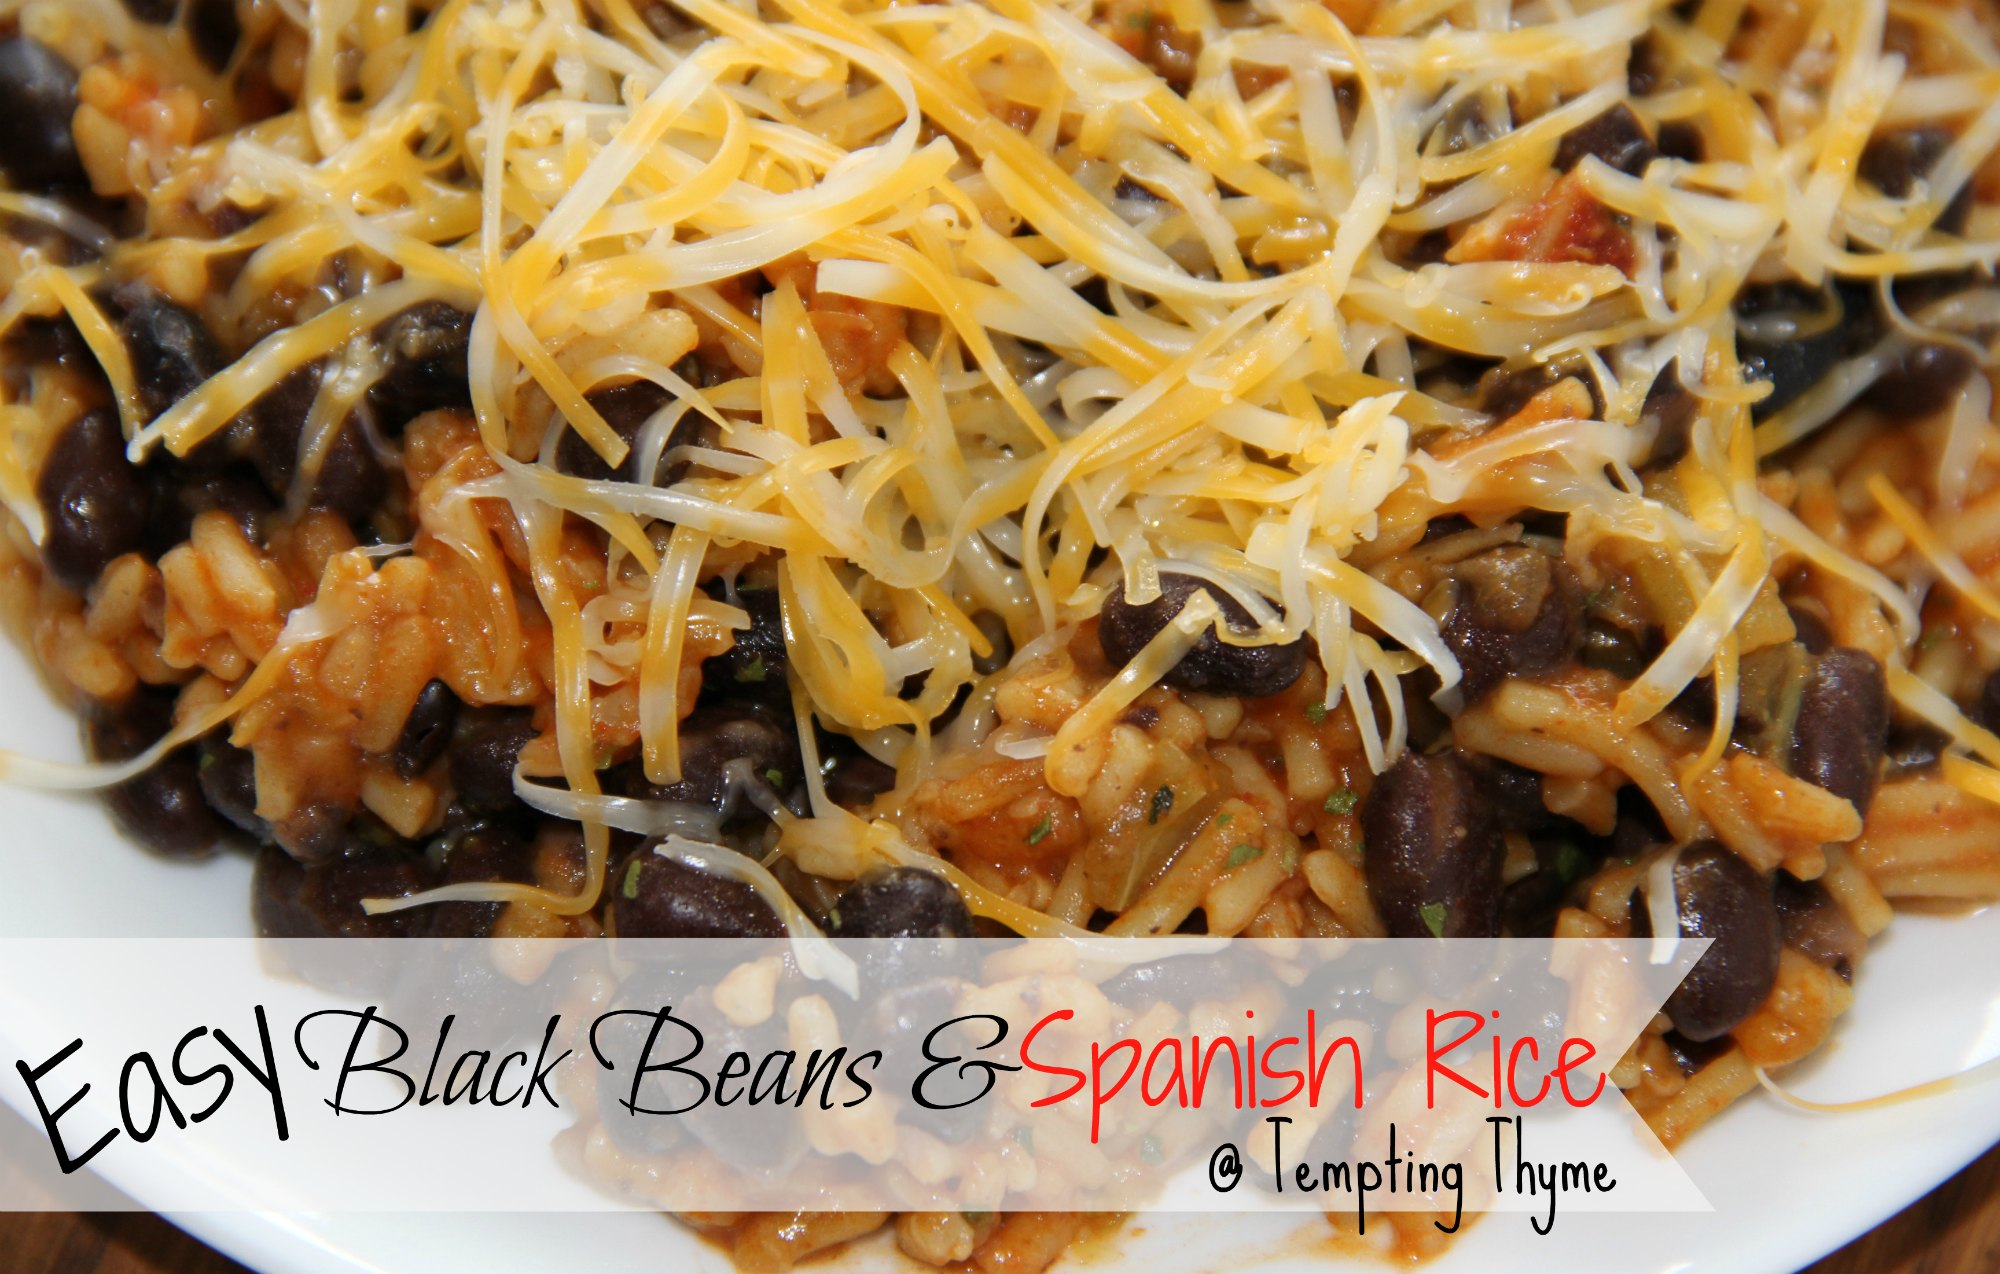 easy-black-beans-and-rice-3.jpg?w=560